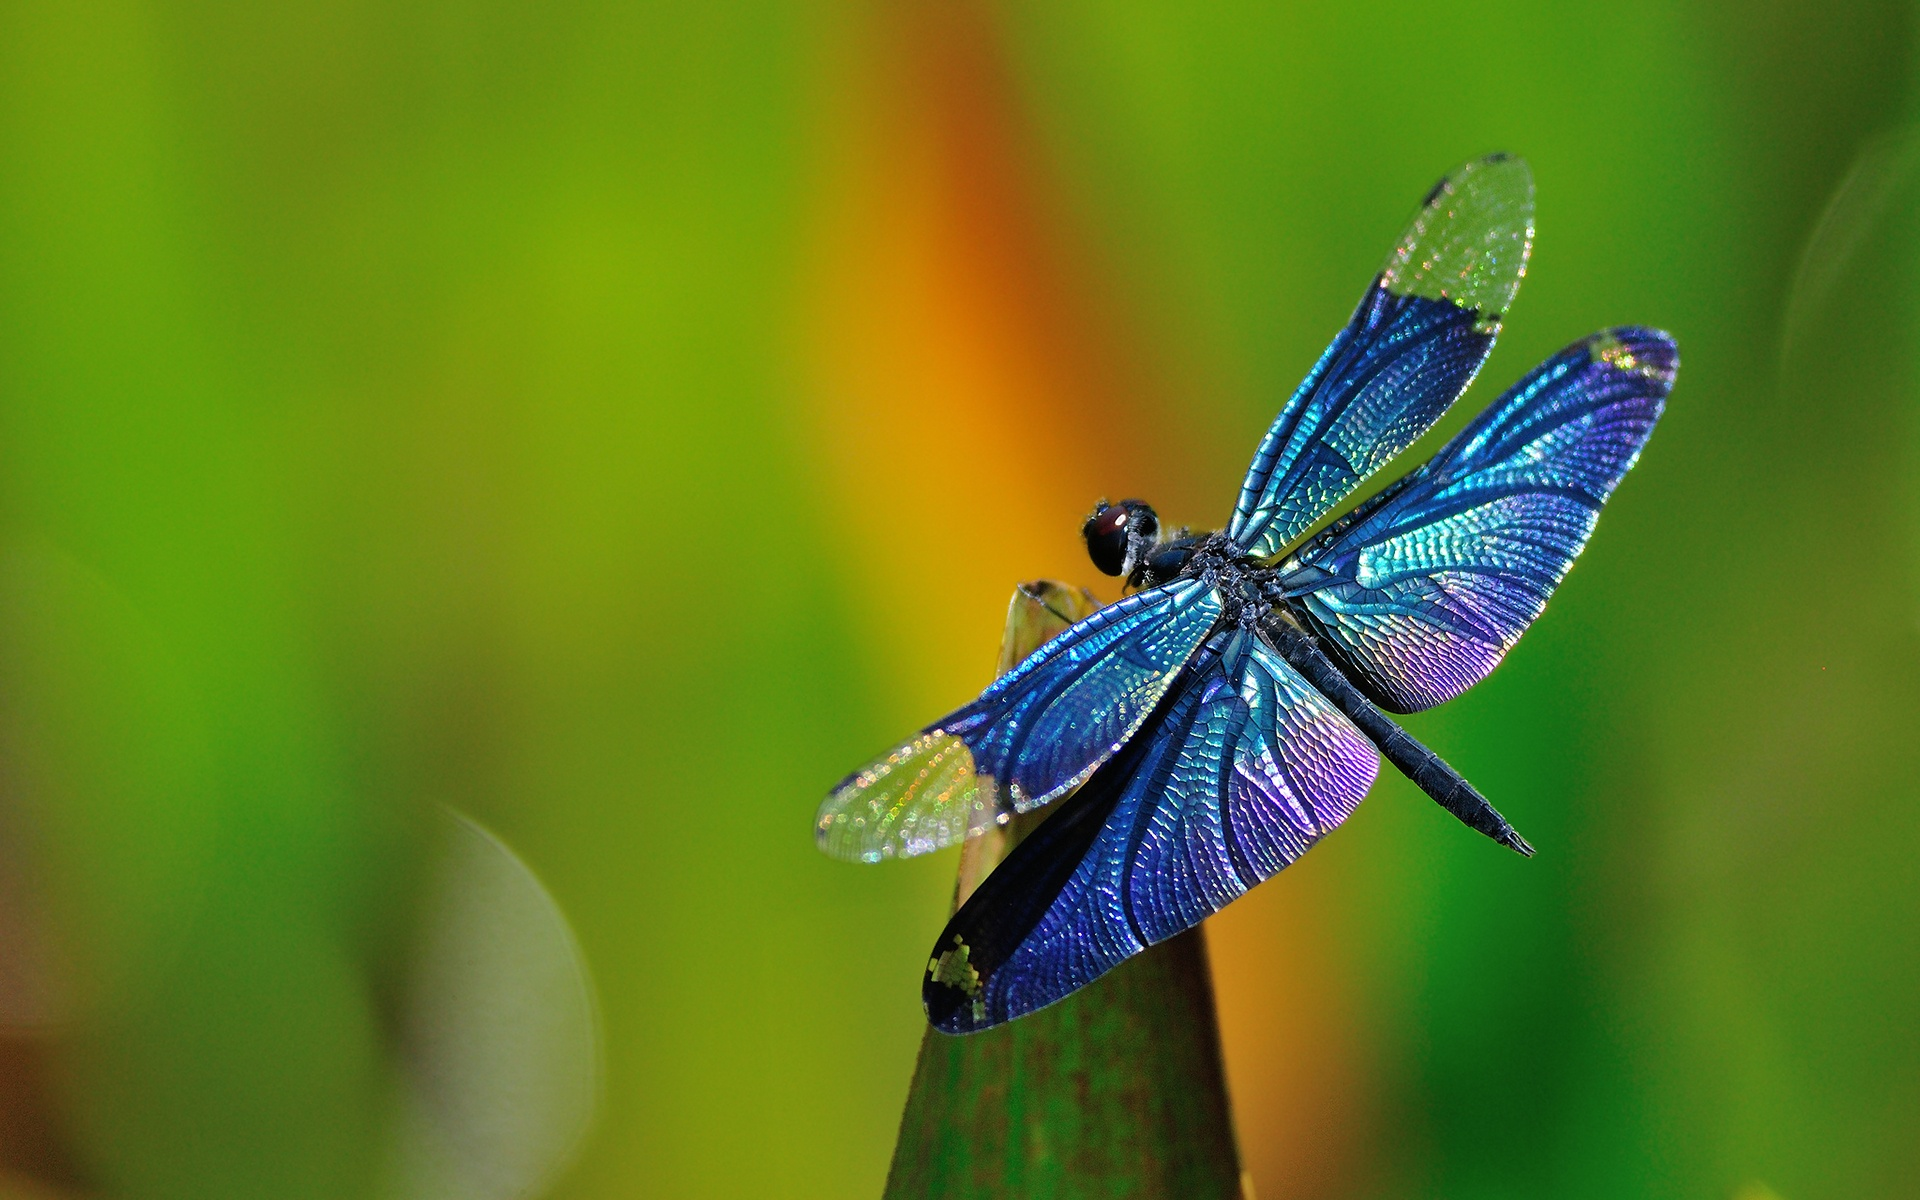 Dragonfly HD Wallpaper